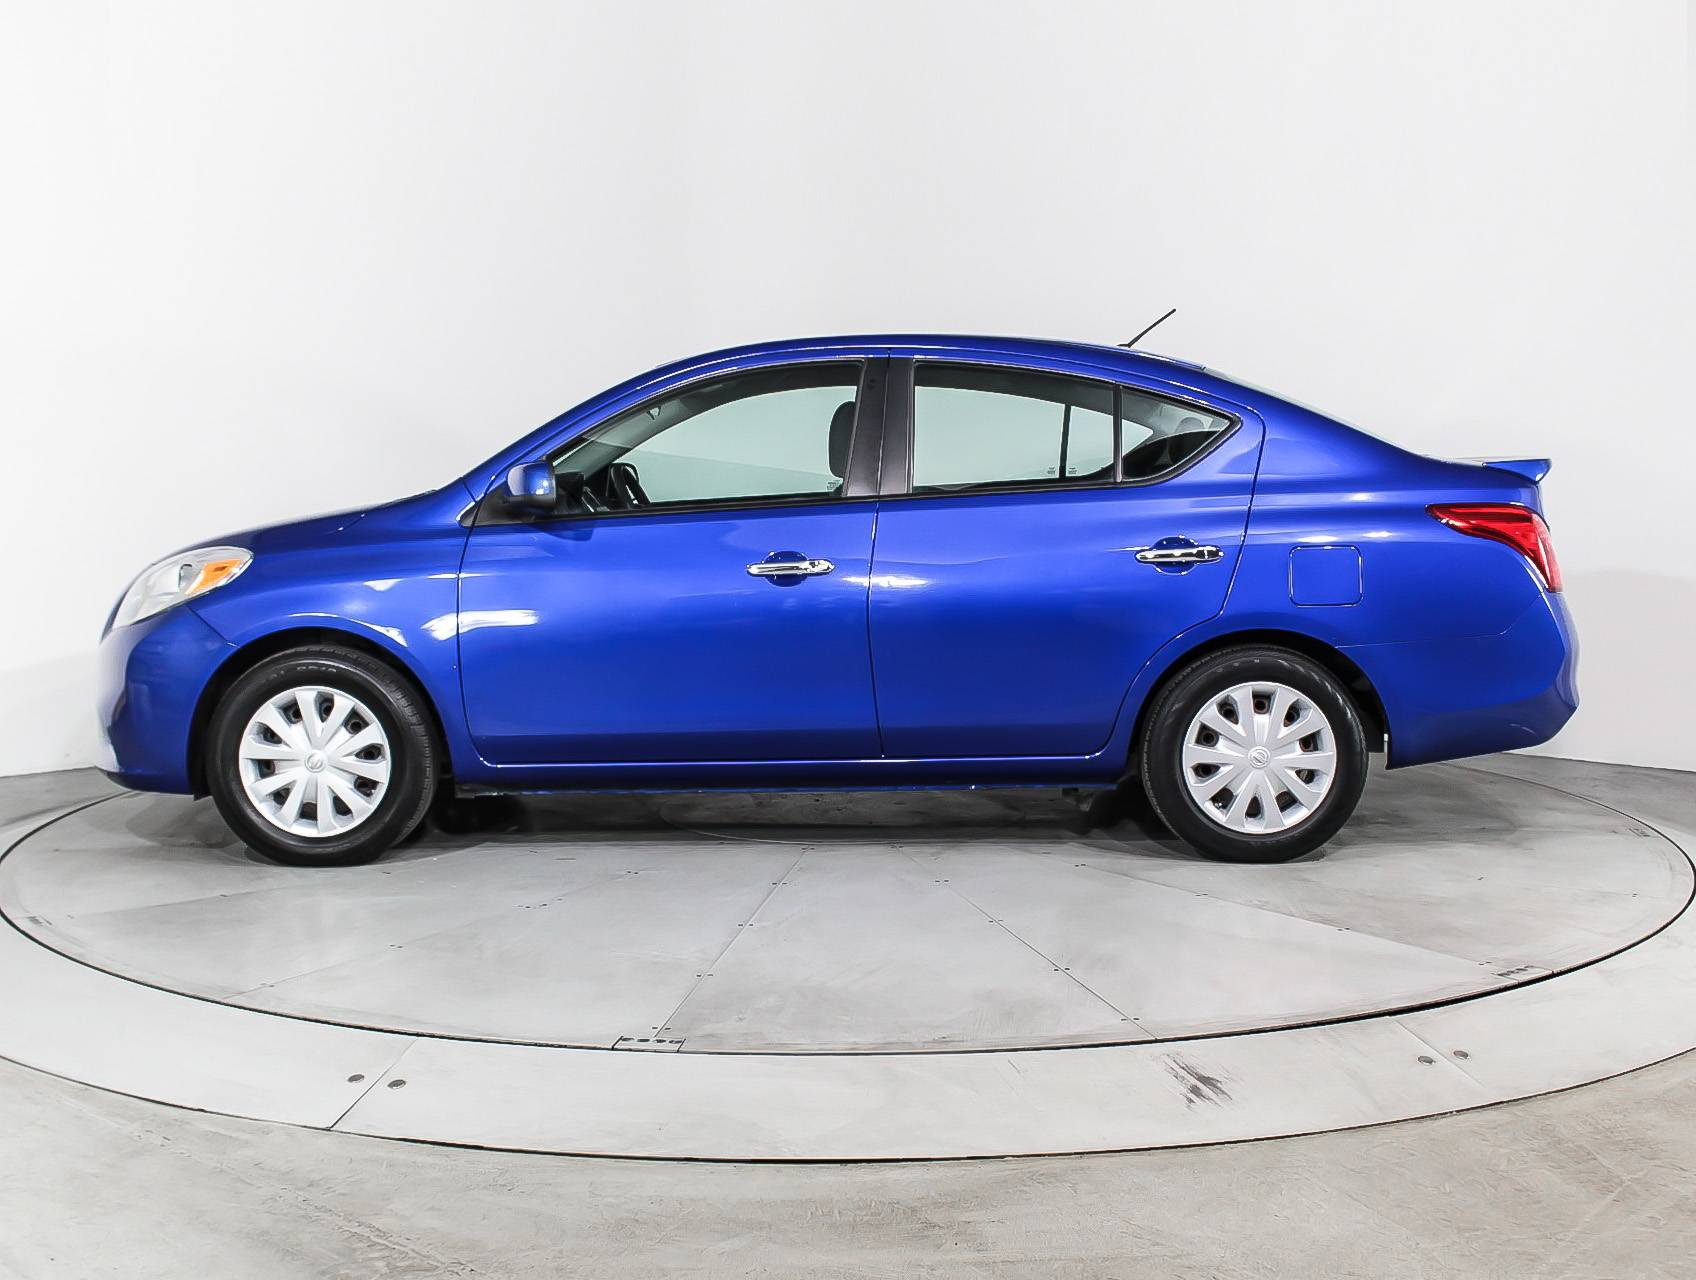 sale for inventory nissan large versa bc in